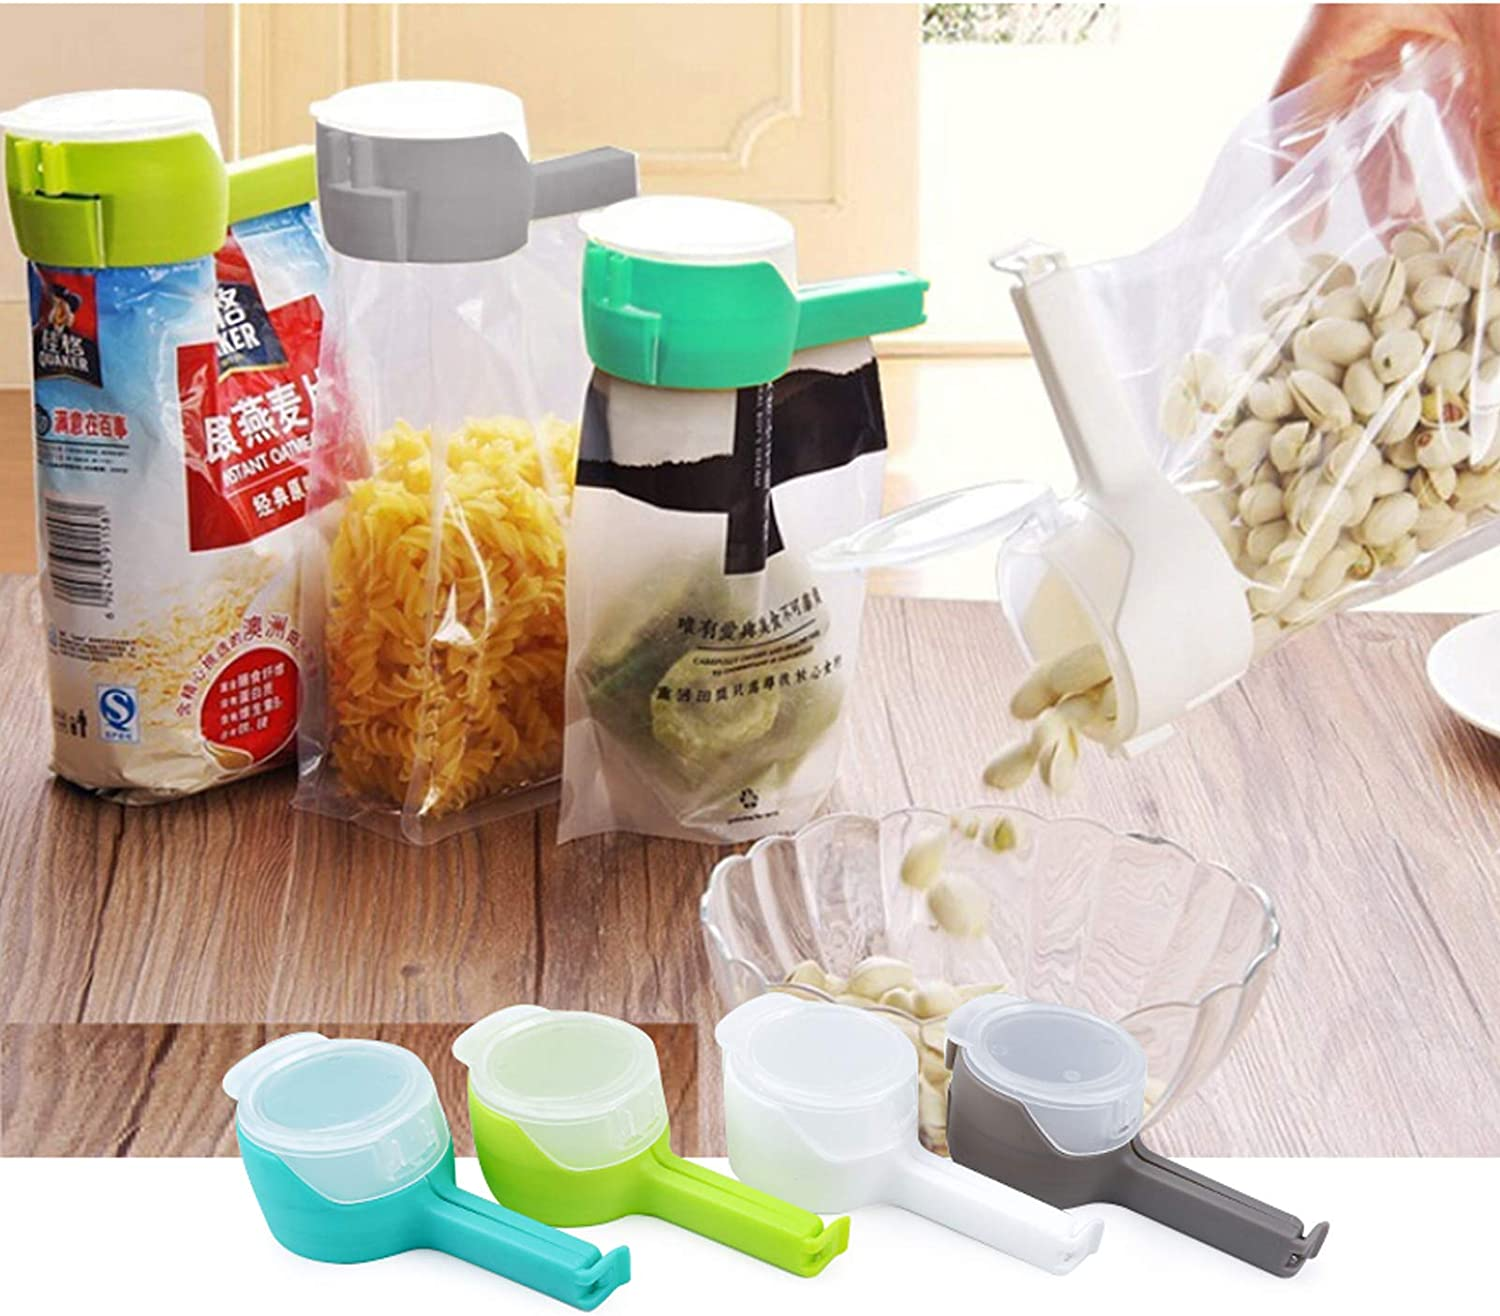 4pcs Food bag clipswith Pour Spouts, Great Clips Bags for Kitchen, Suitable for Small Particle Food, Liquid,Flour and Baby Food Storage Organizer